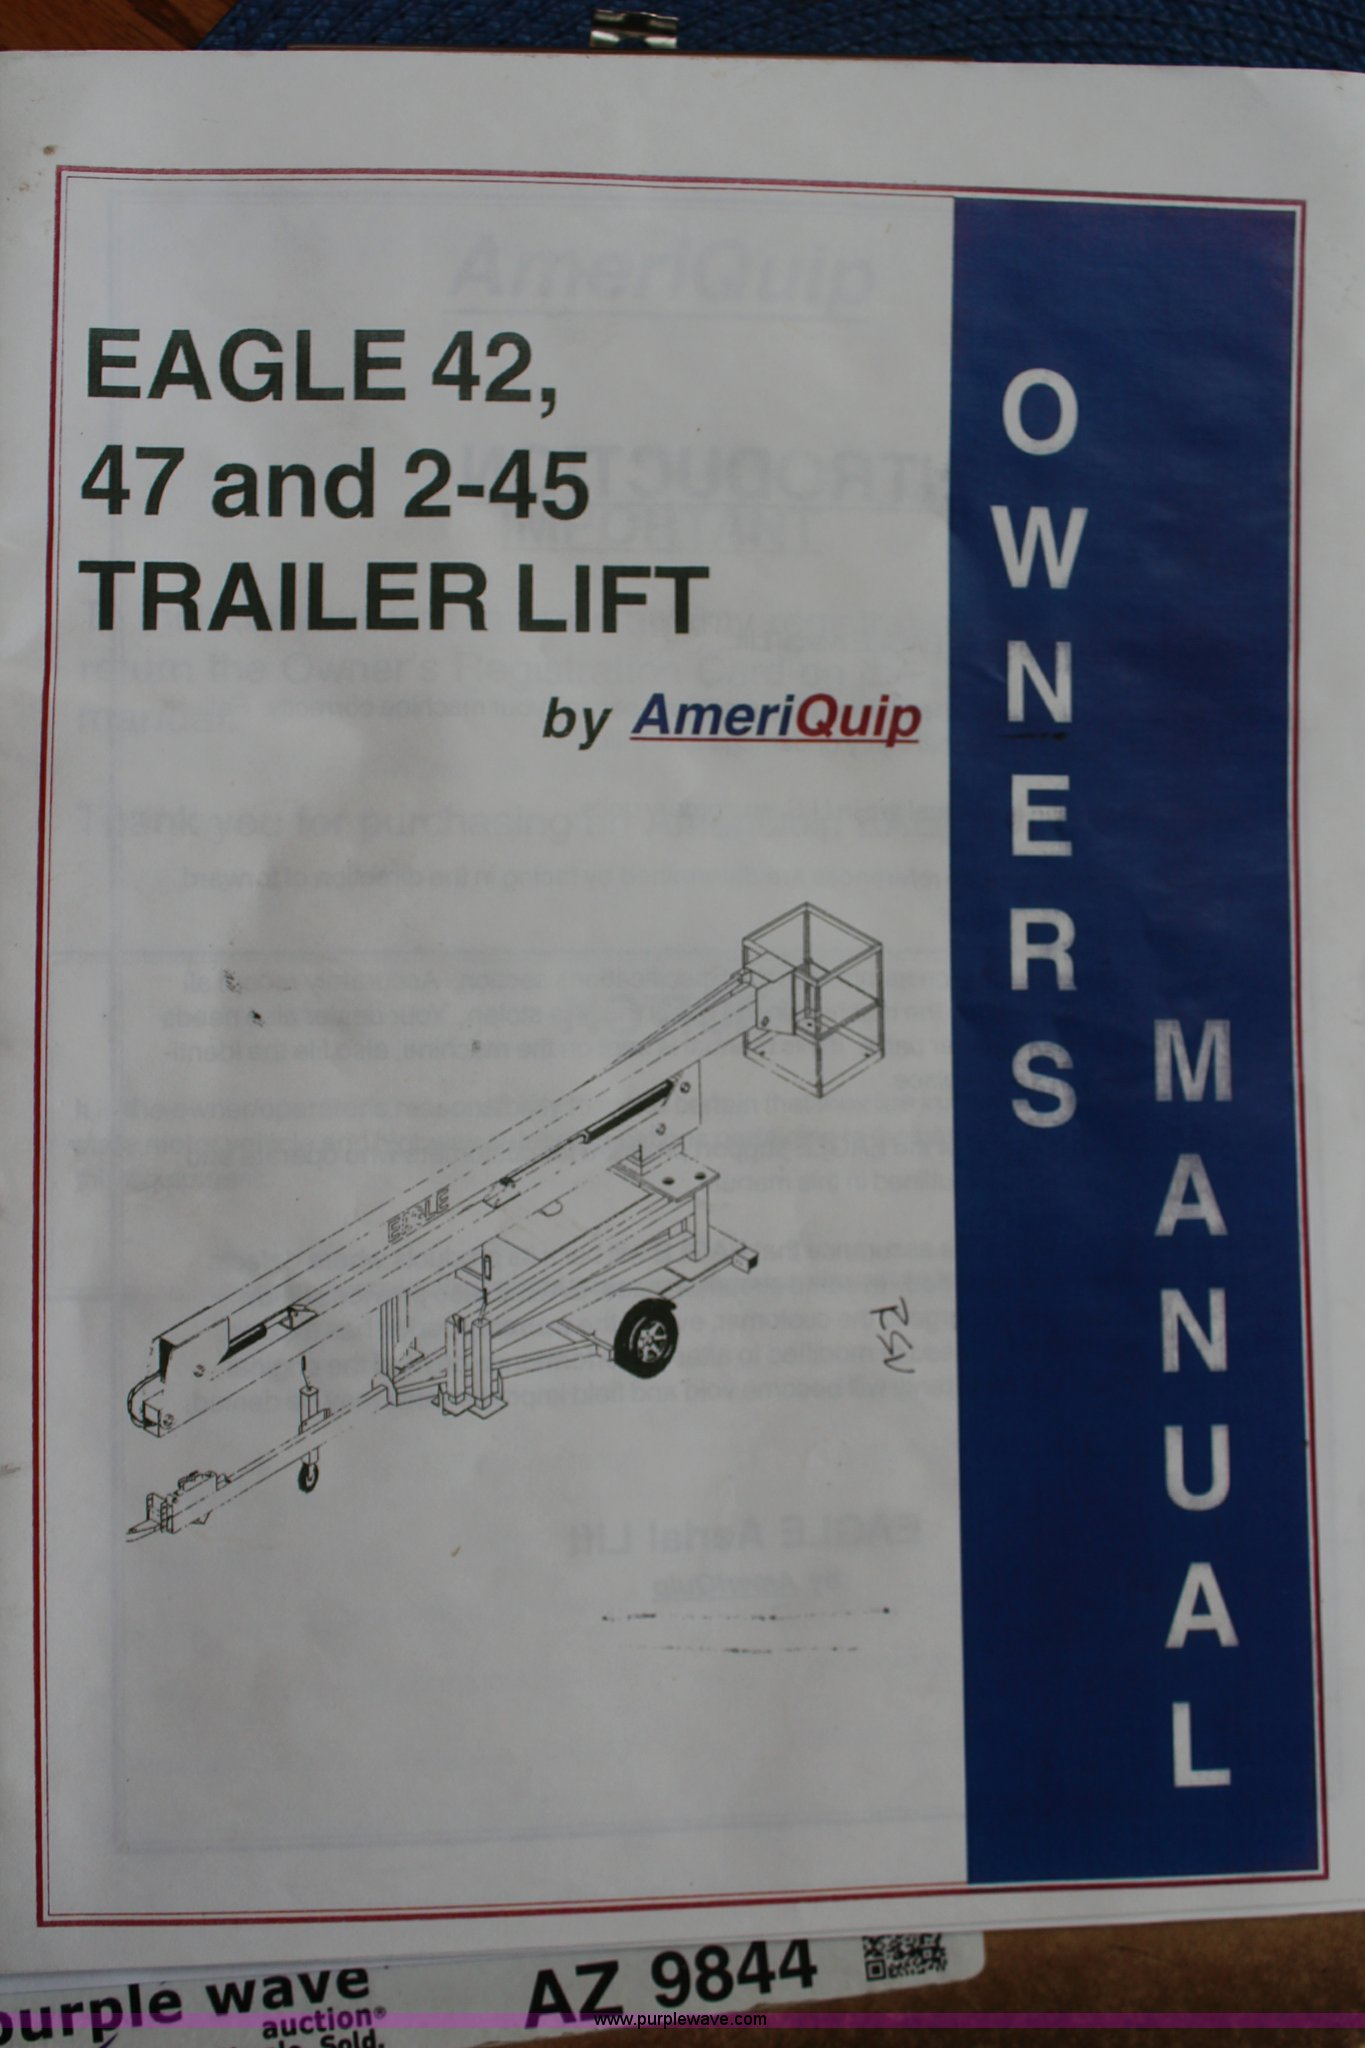 Genesis Vertical Lift Wiring Diagram Explained Diagrams Maxon 280253 Boom Eagle Trusted 2 45 Smart